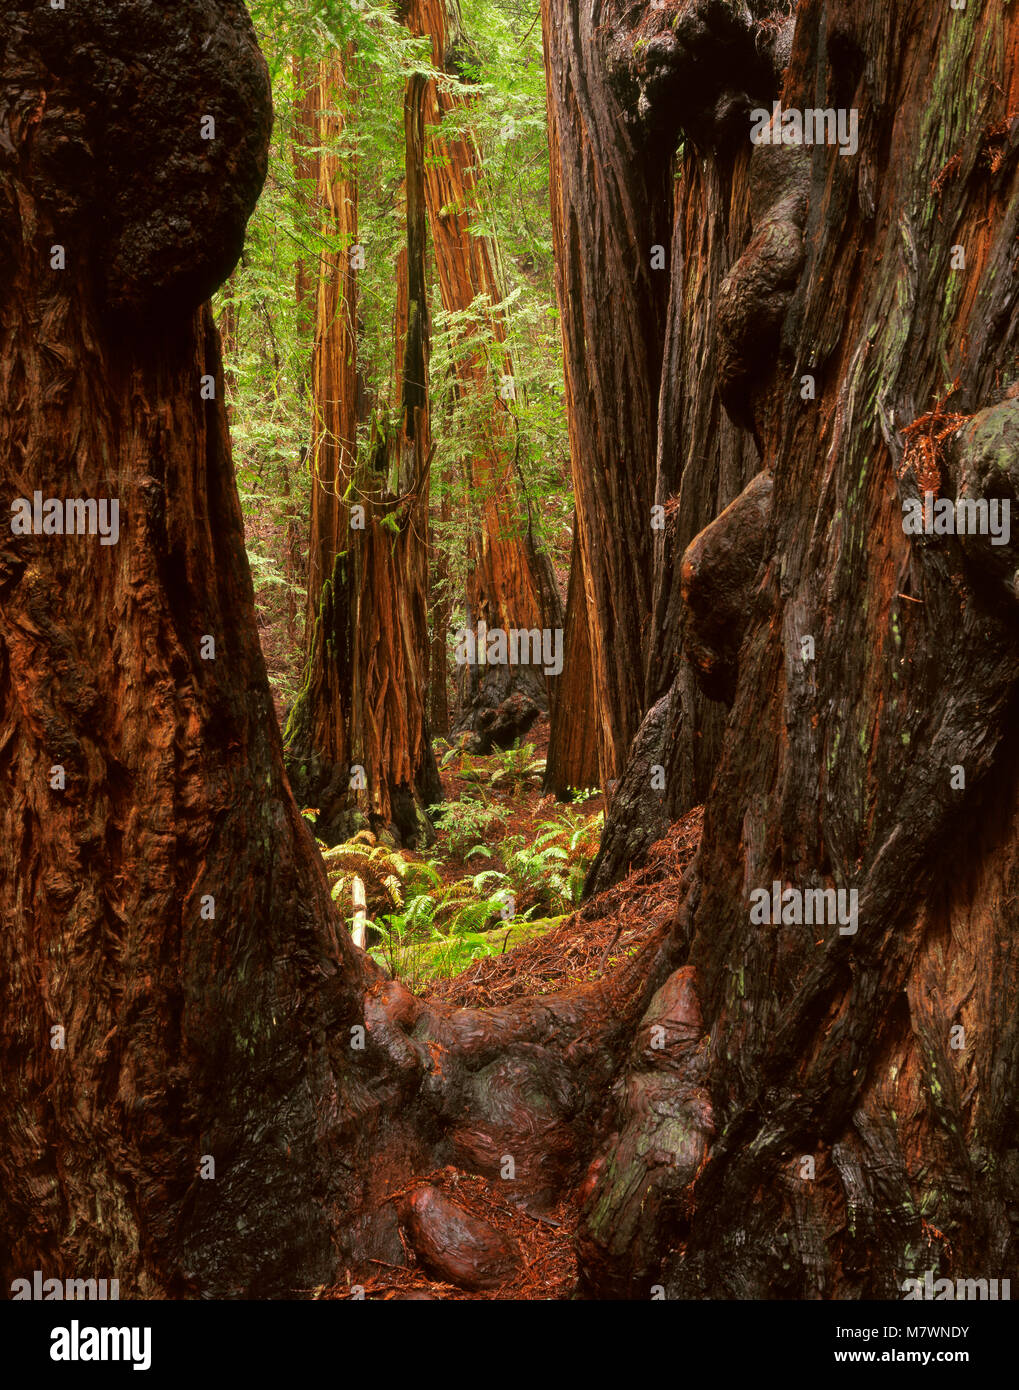 Redwoods, Sequoia sempervirens, Muir Woods National Monument, Marin County, California - Stock Image